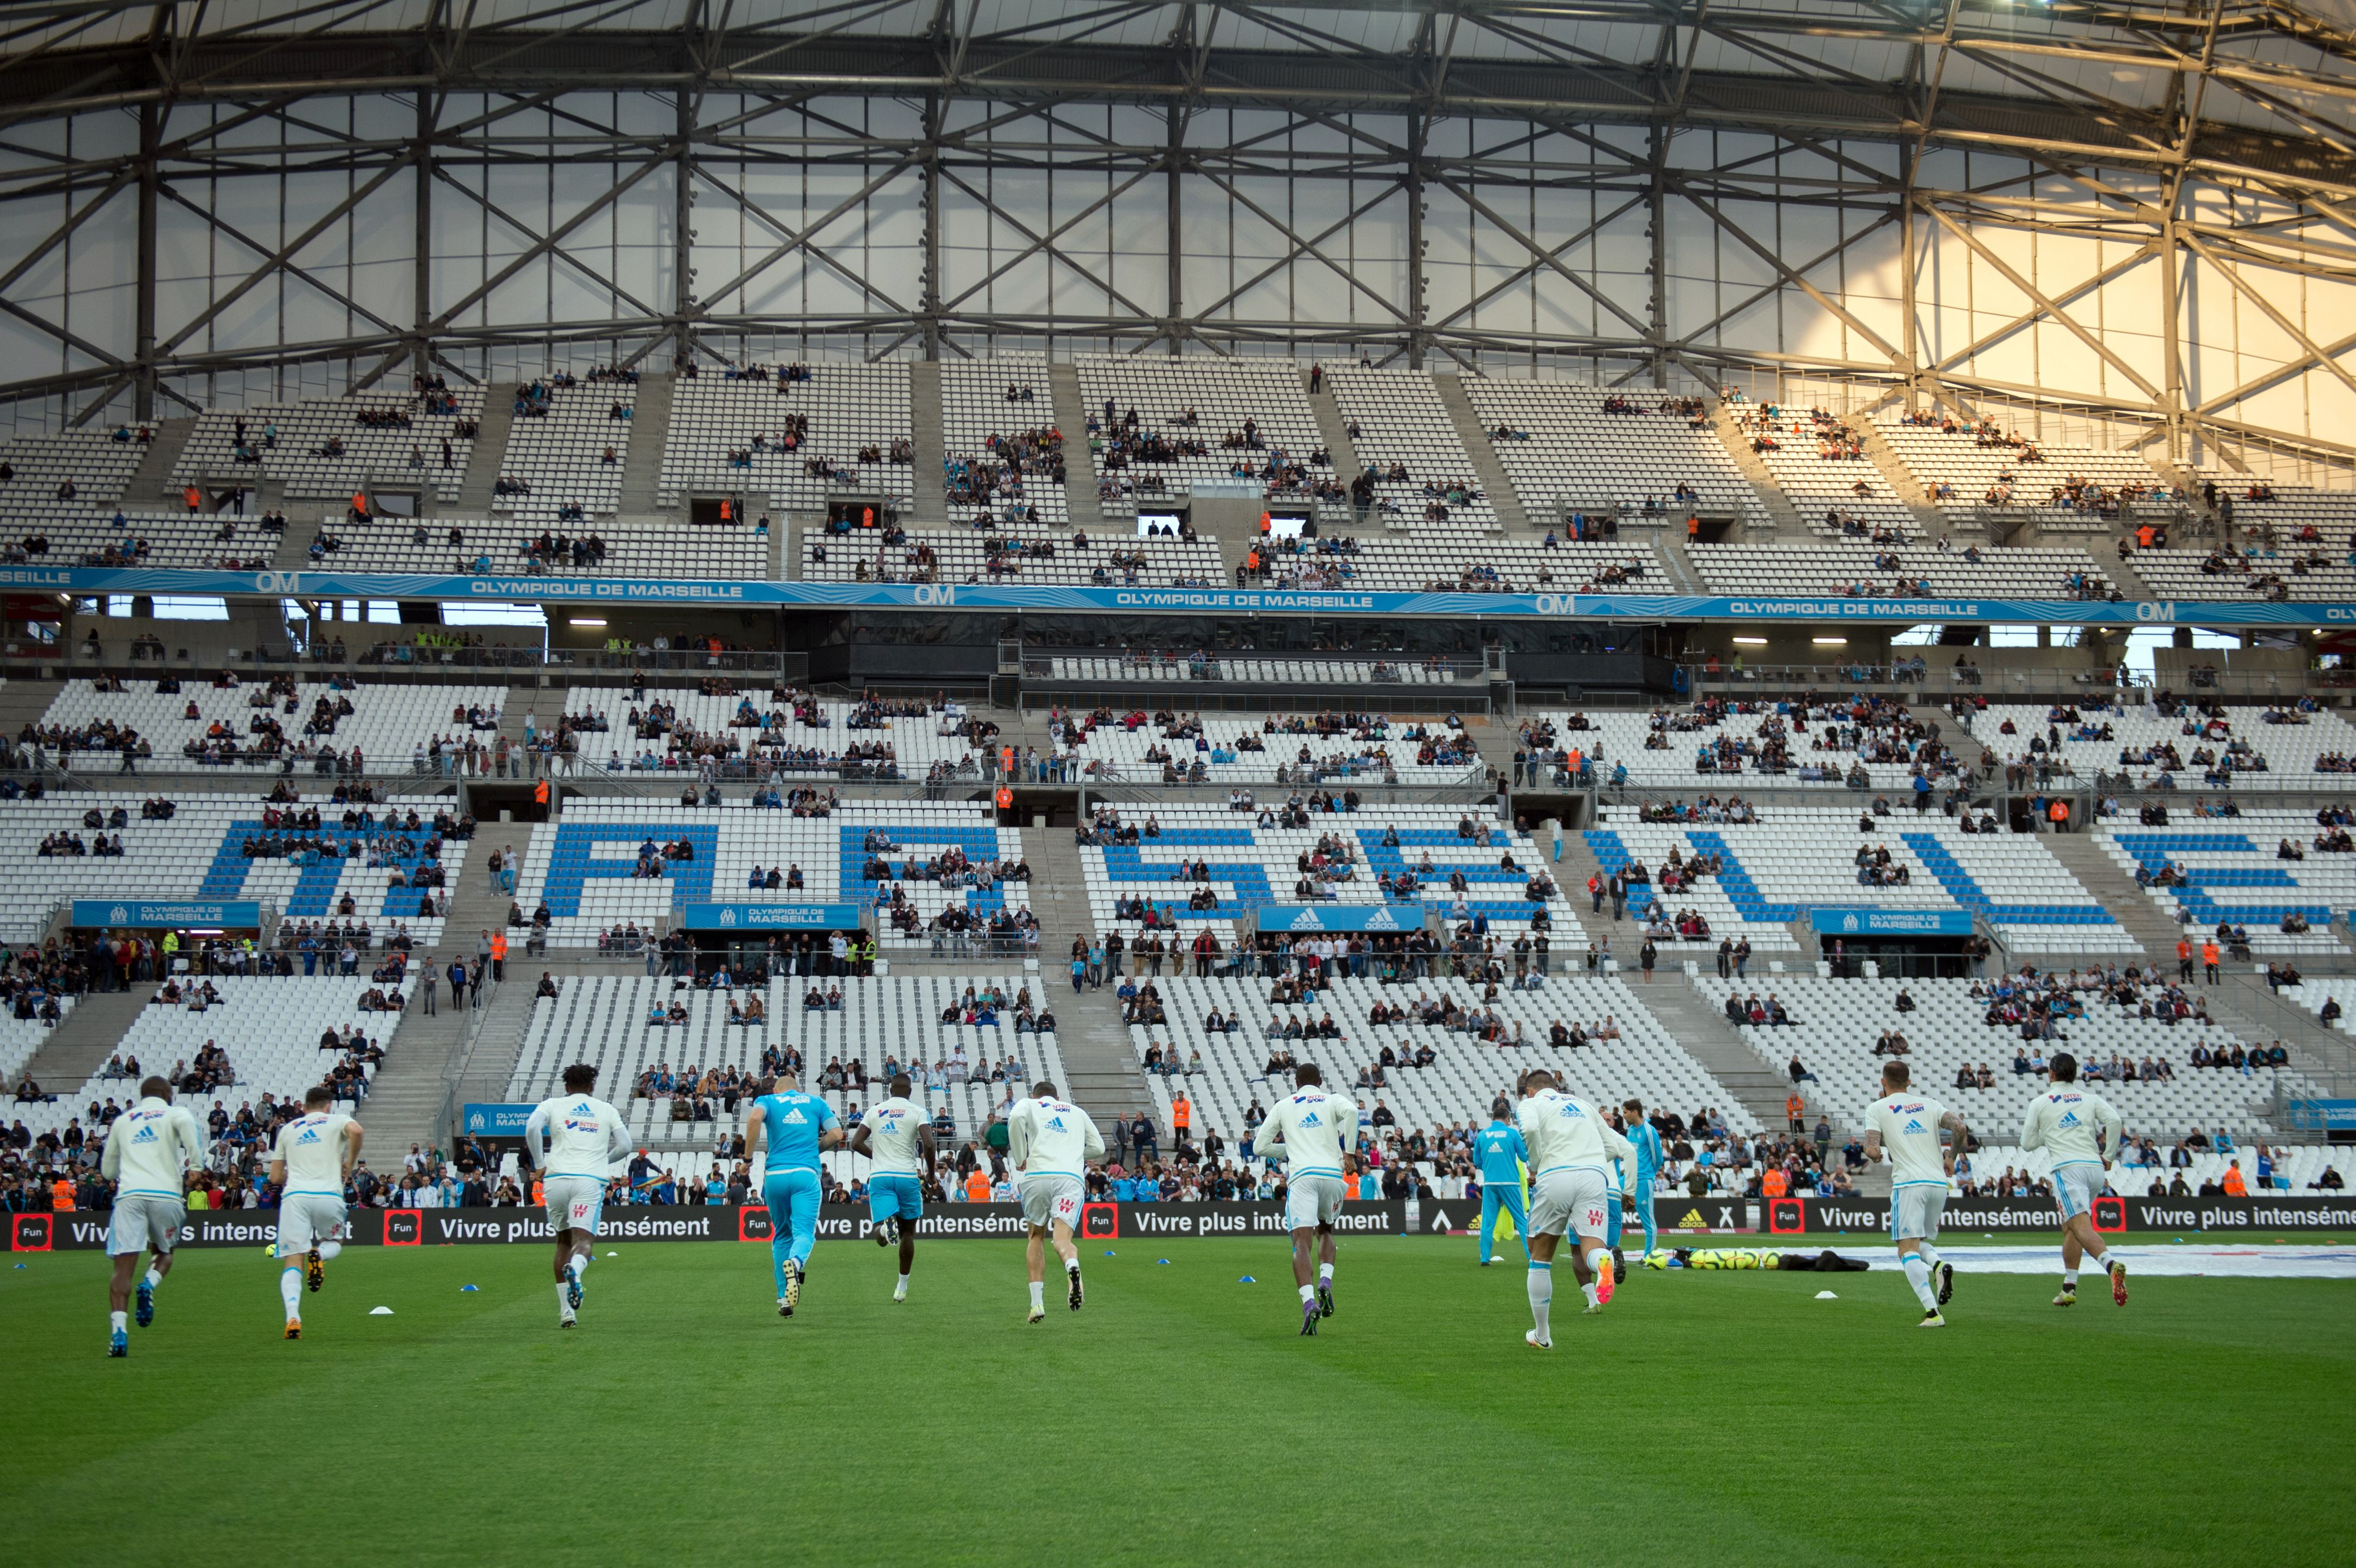 Marseille's players warm up prior to the French L1 football match between Marseille and Reims on May 7, 2016 at the Velodrome stadium in Marseille, southern France. AFP PHOTO / BERTRAND LANGLOIS / AFP / BERTRAND LANGLOIS        (Photo credit should read BERTRAND LANGLOIS/AFP/Getty Images)